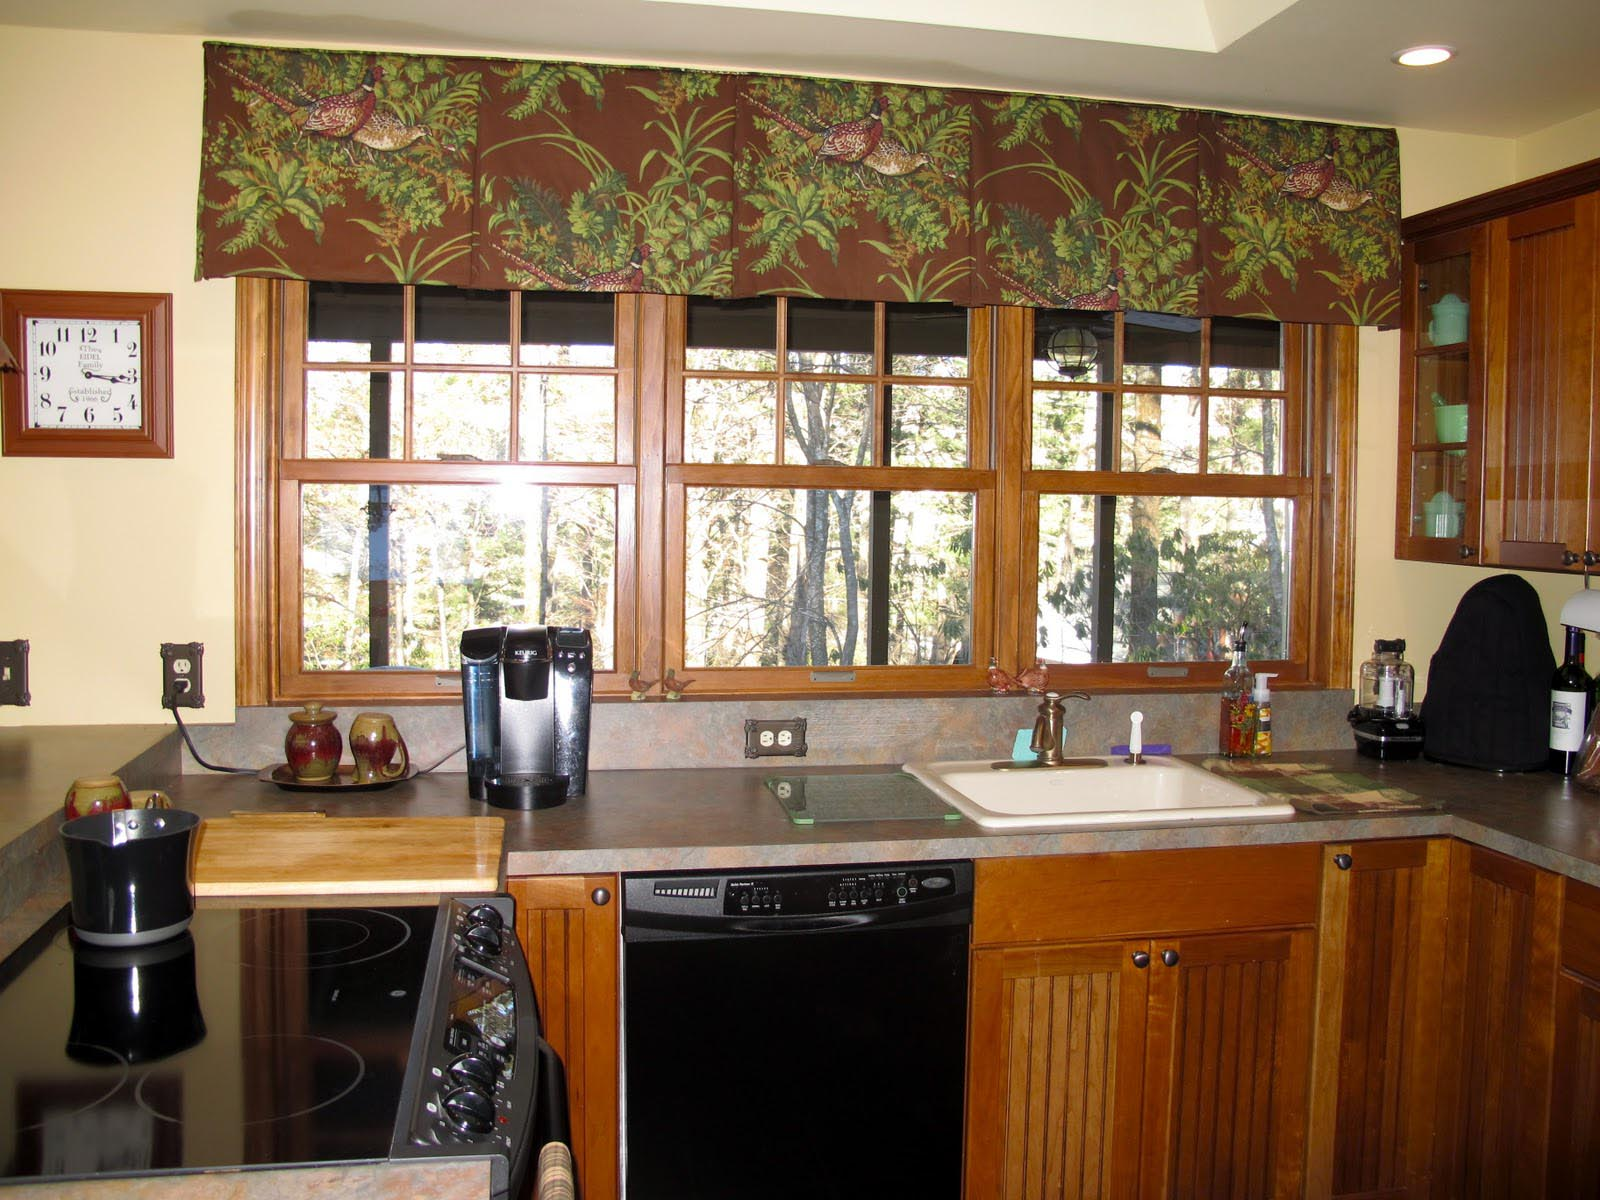 Kitchen window valances ideas window treatments design ideas for Kitchen ideas no window